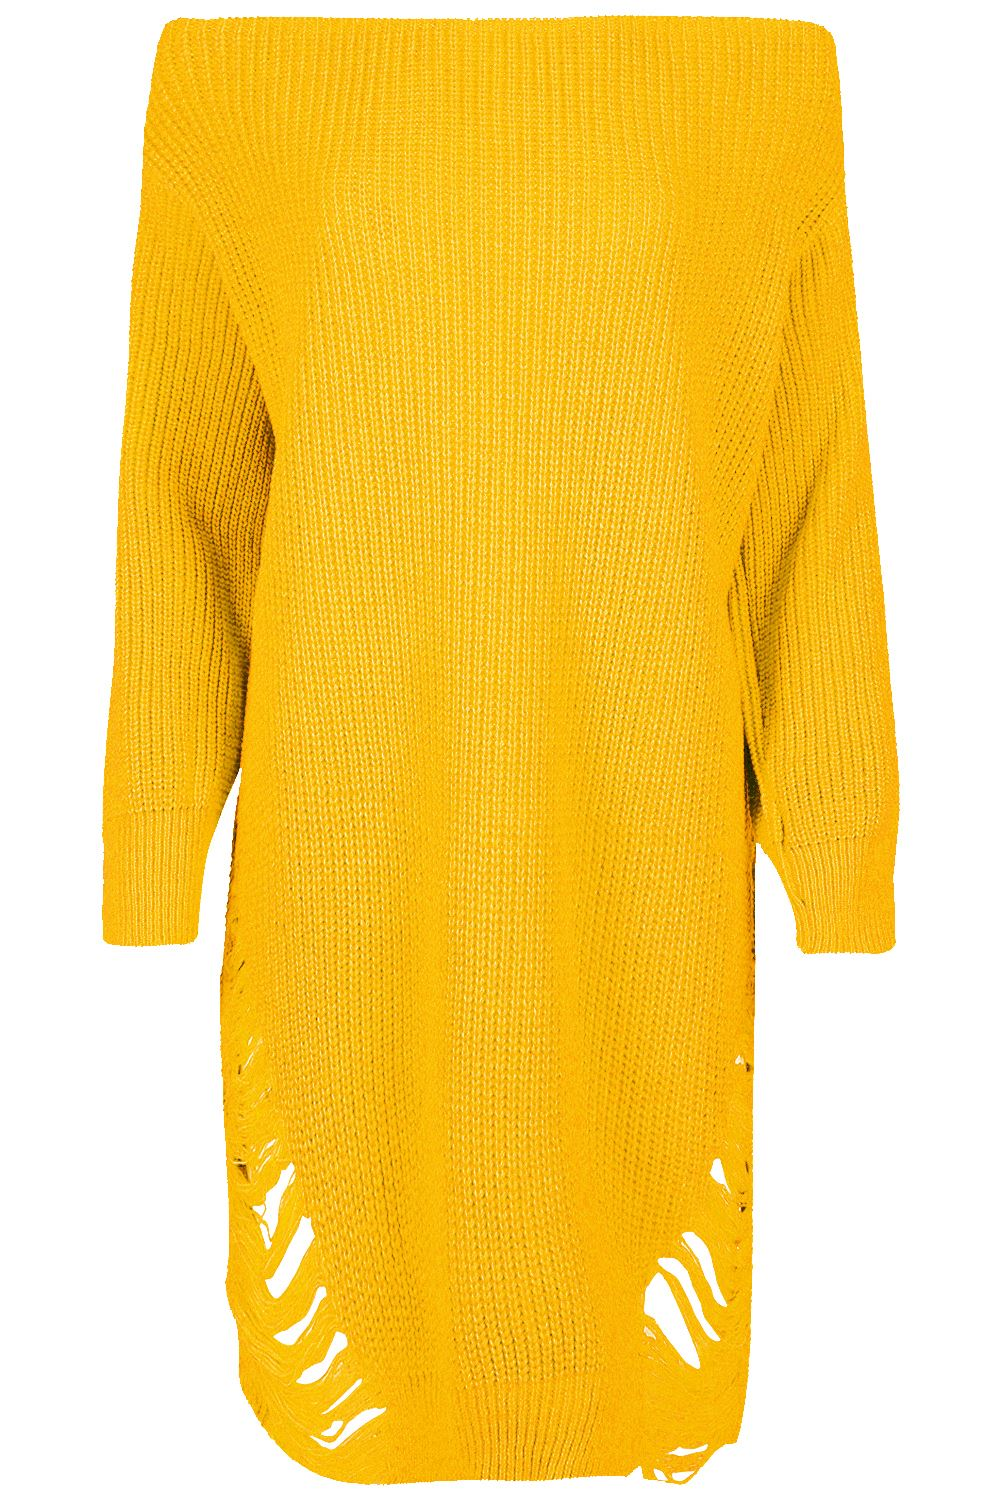 Womens-Oversized-Jumper-Ladies-Dress-Long-Sleeve-Chunky-Knitted-Long-Sweater-Top thumbnail 30